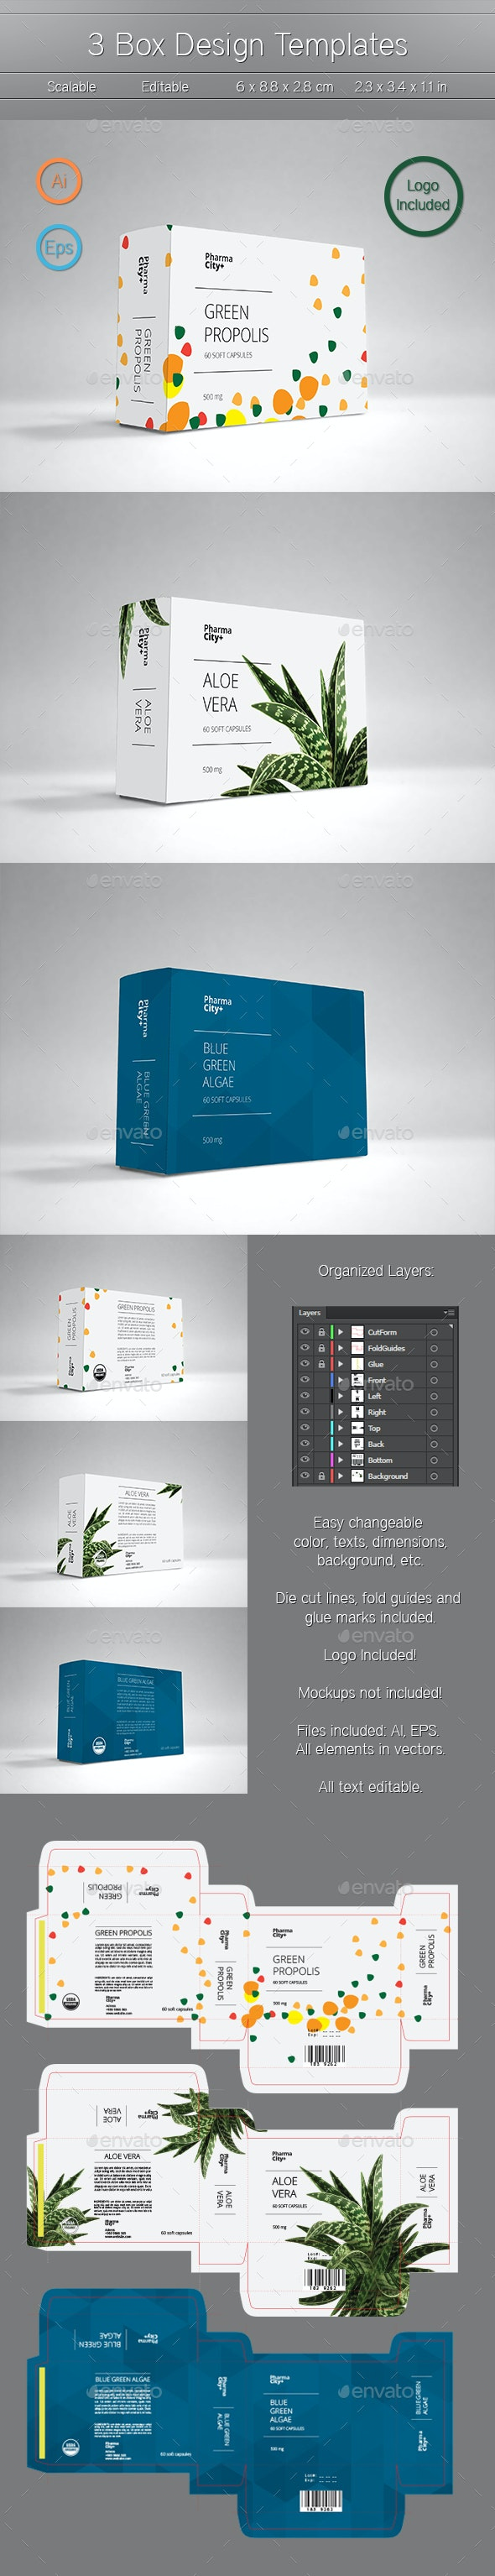 3 Box Design Templates - Packaging Print Templates